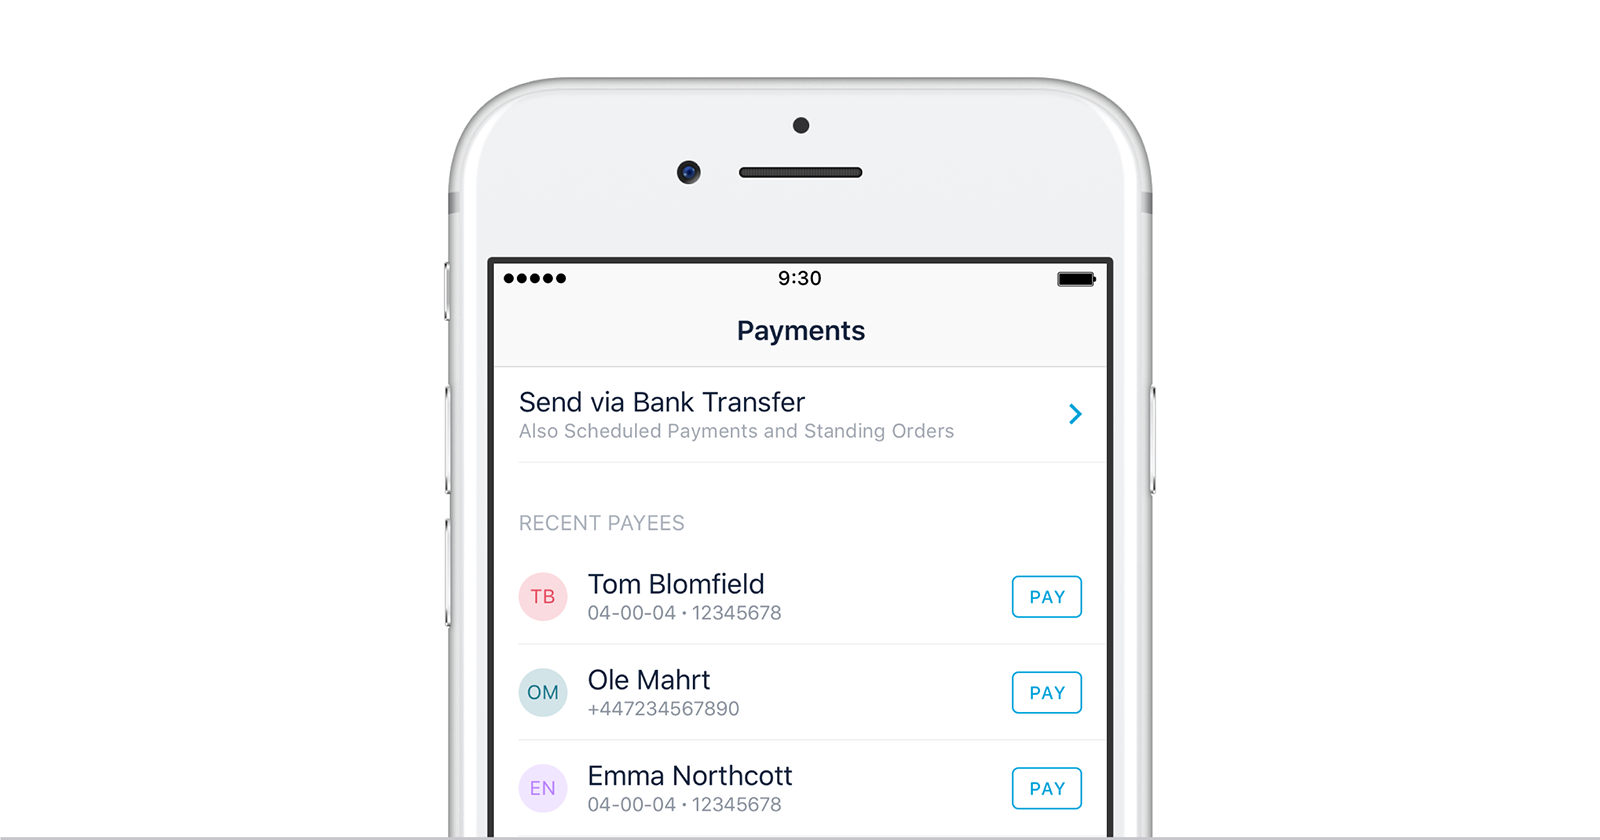 Making Monzo-to-Monzo payments in the Monzo app